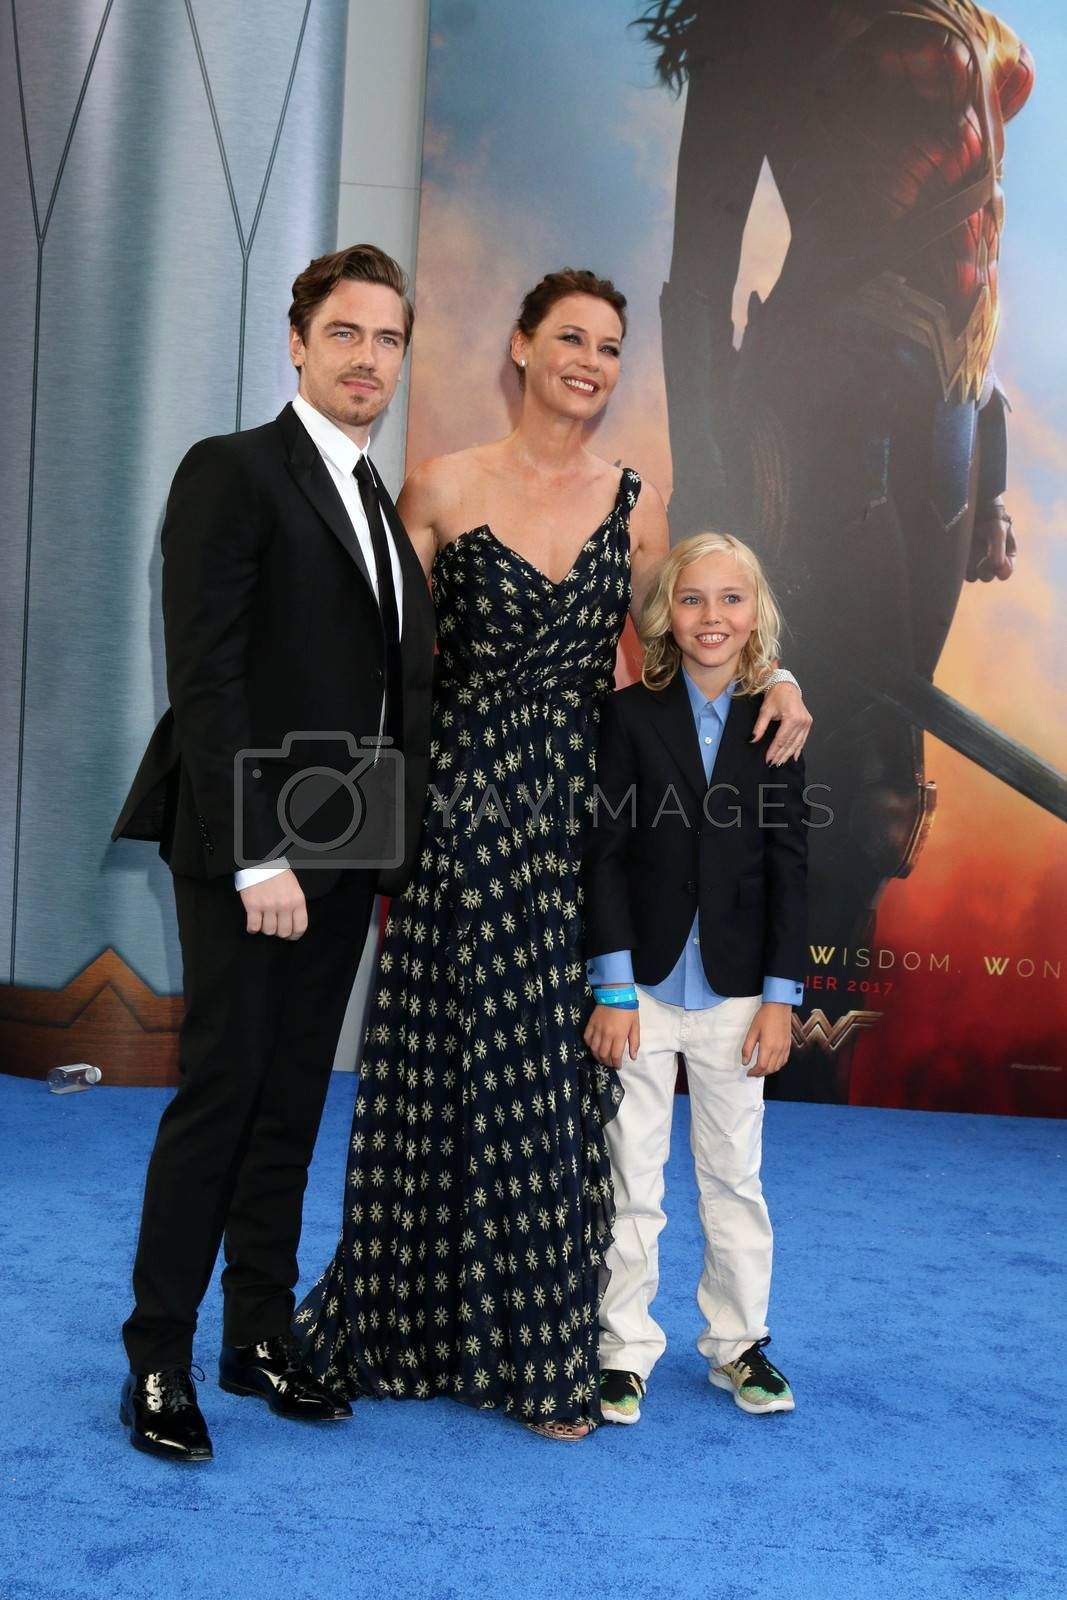 """Royalty free image of Sebastian Sartor, Connie Nielsen, Bryce Thadeus Ulrich-Nielsen at the """"Wonder Woman"""" Premiere, Pantages, Hollywood, CA 05-25-17/ImageCollect by ImageCollect"""